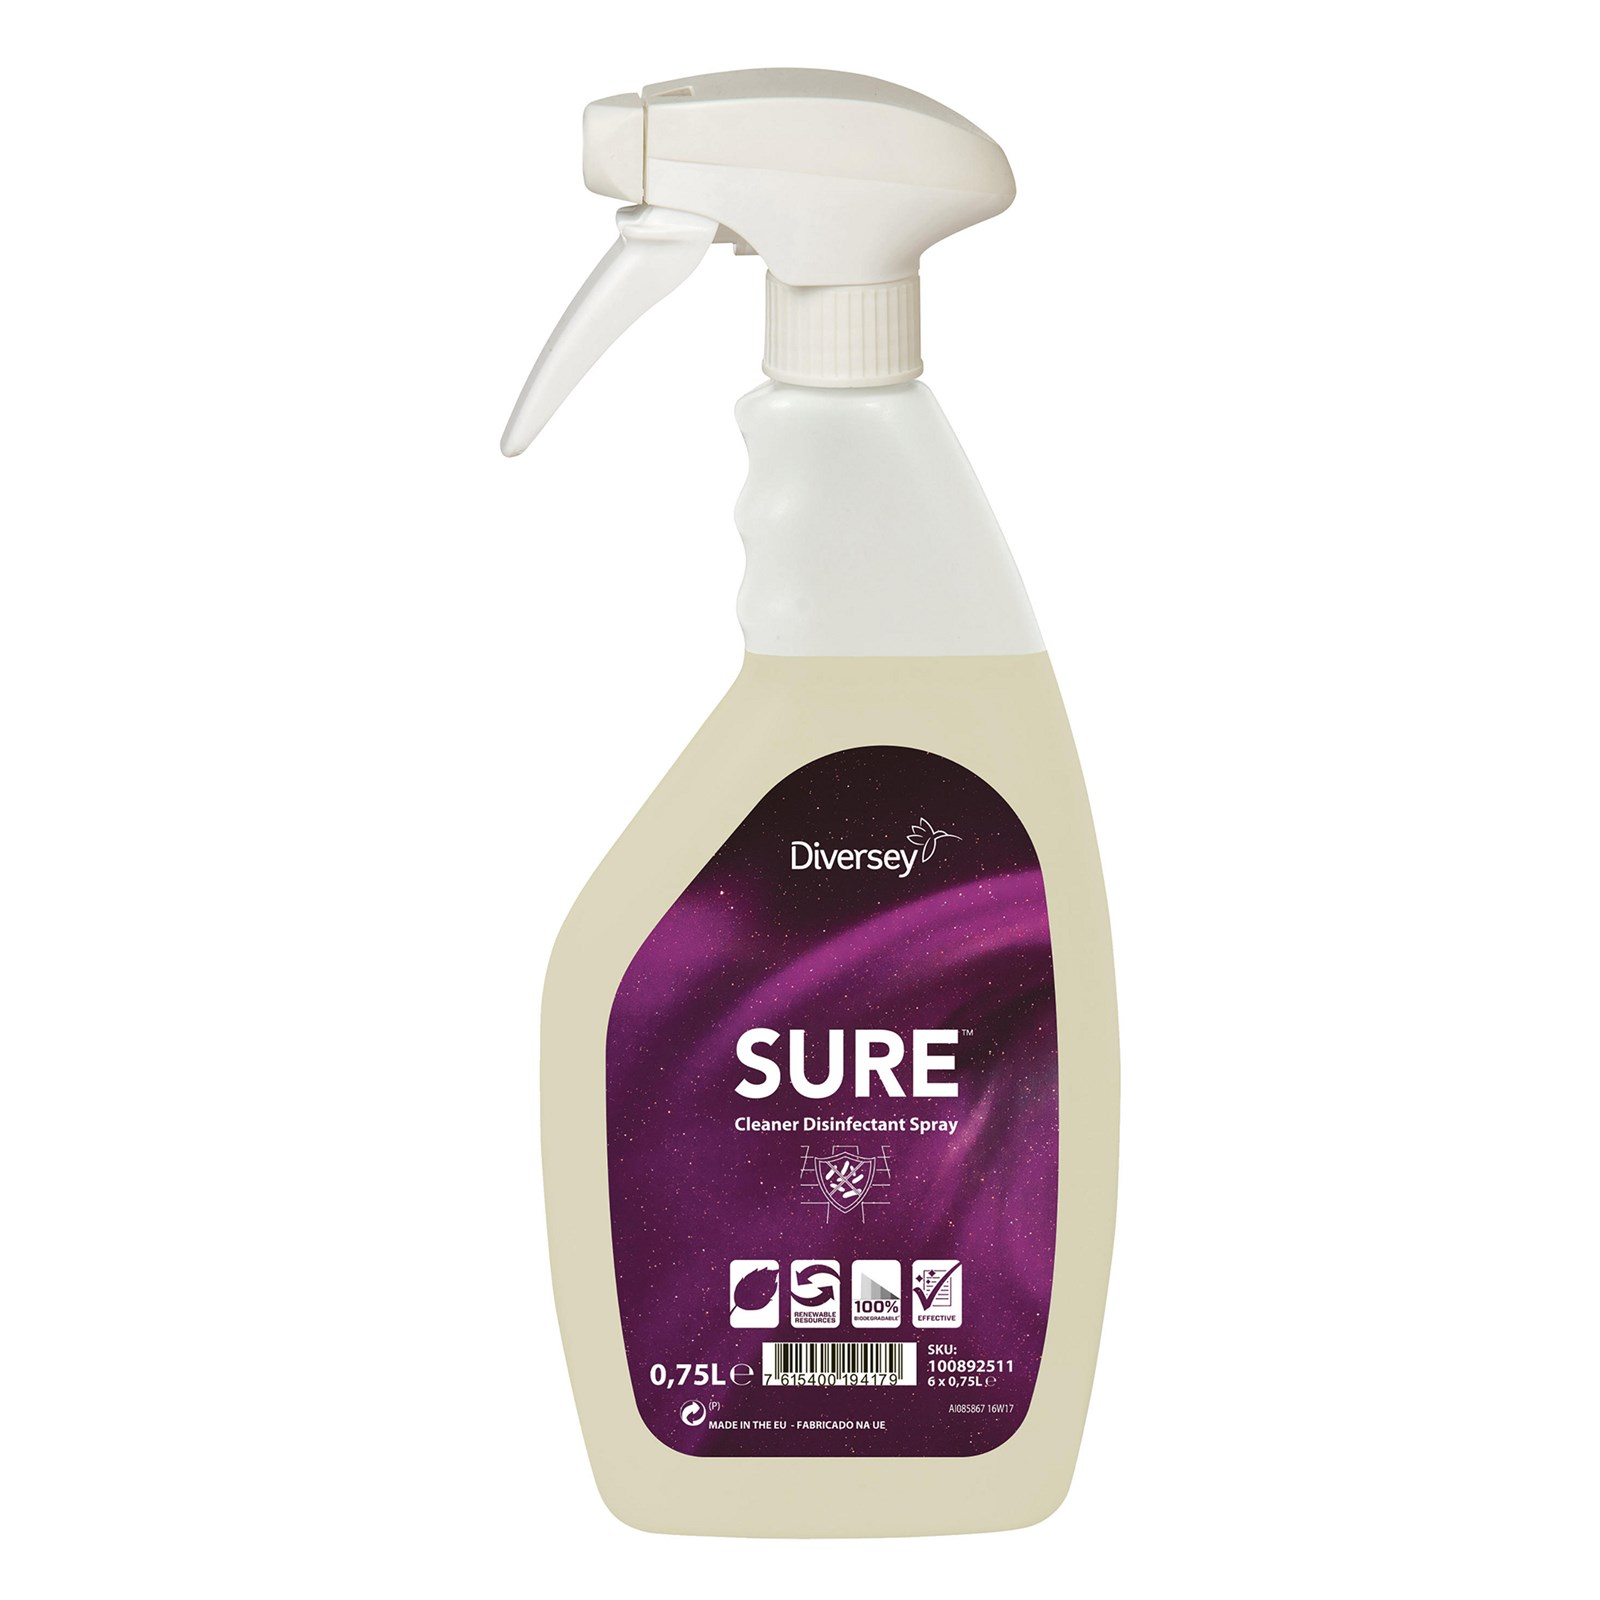 SURE Cleaner Disinfectant